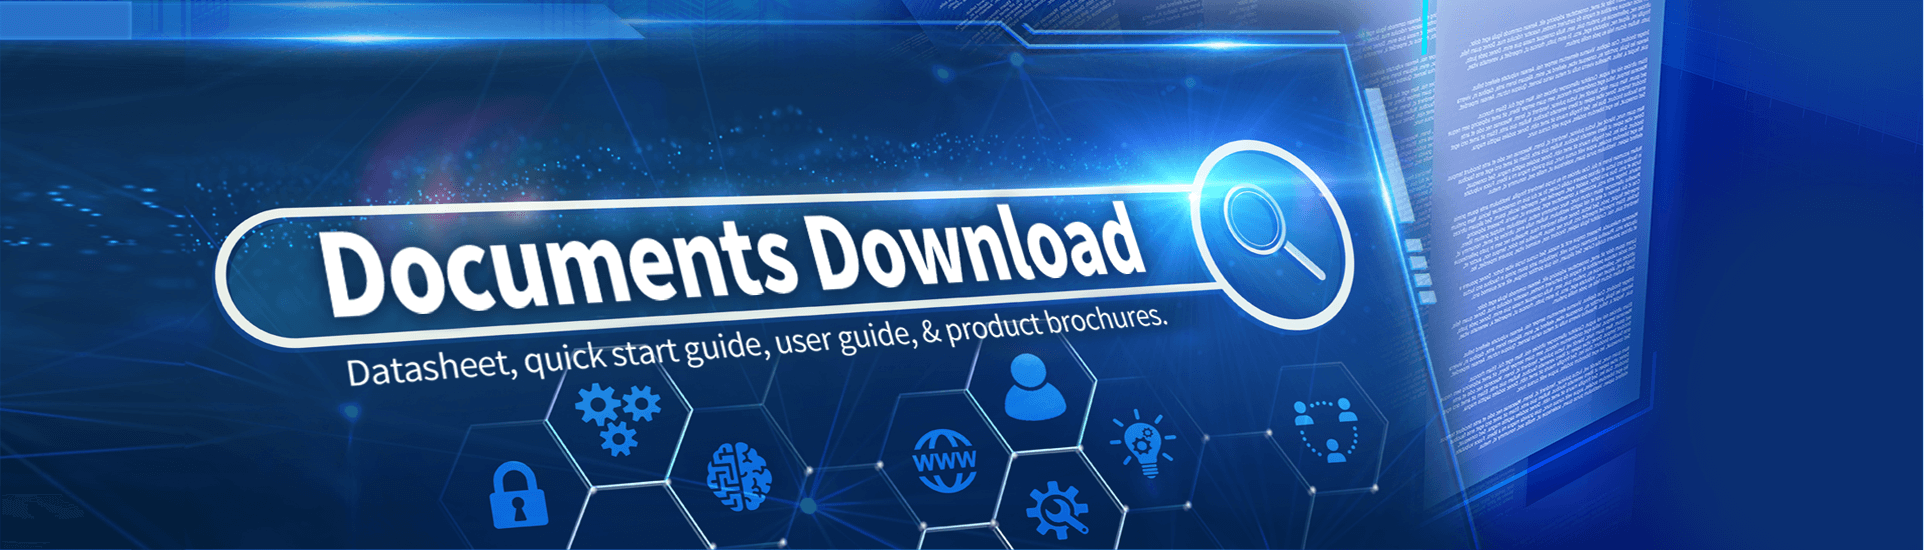 Documents Download